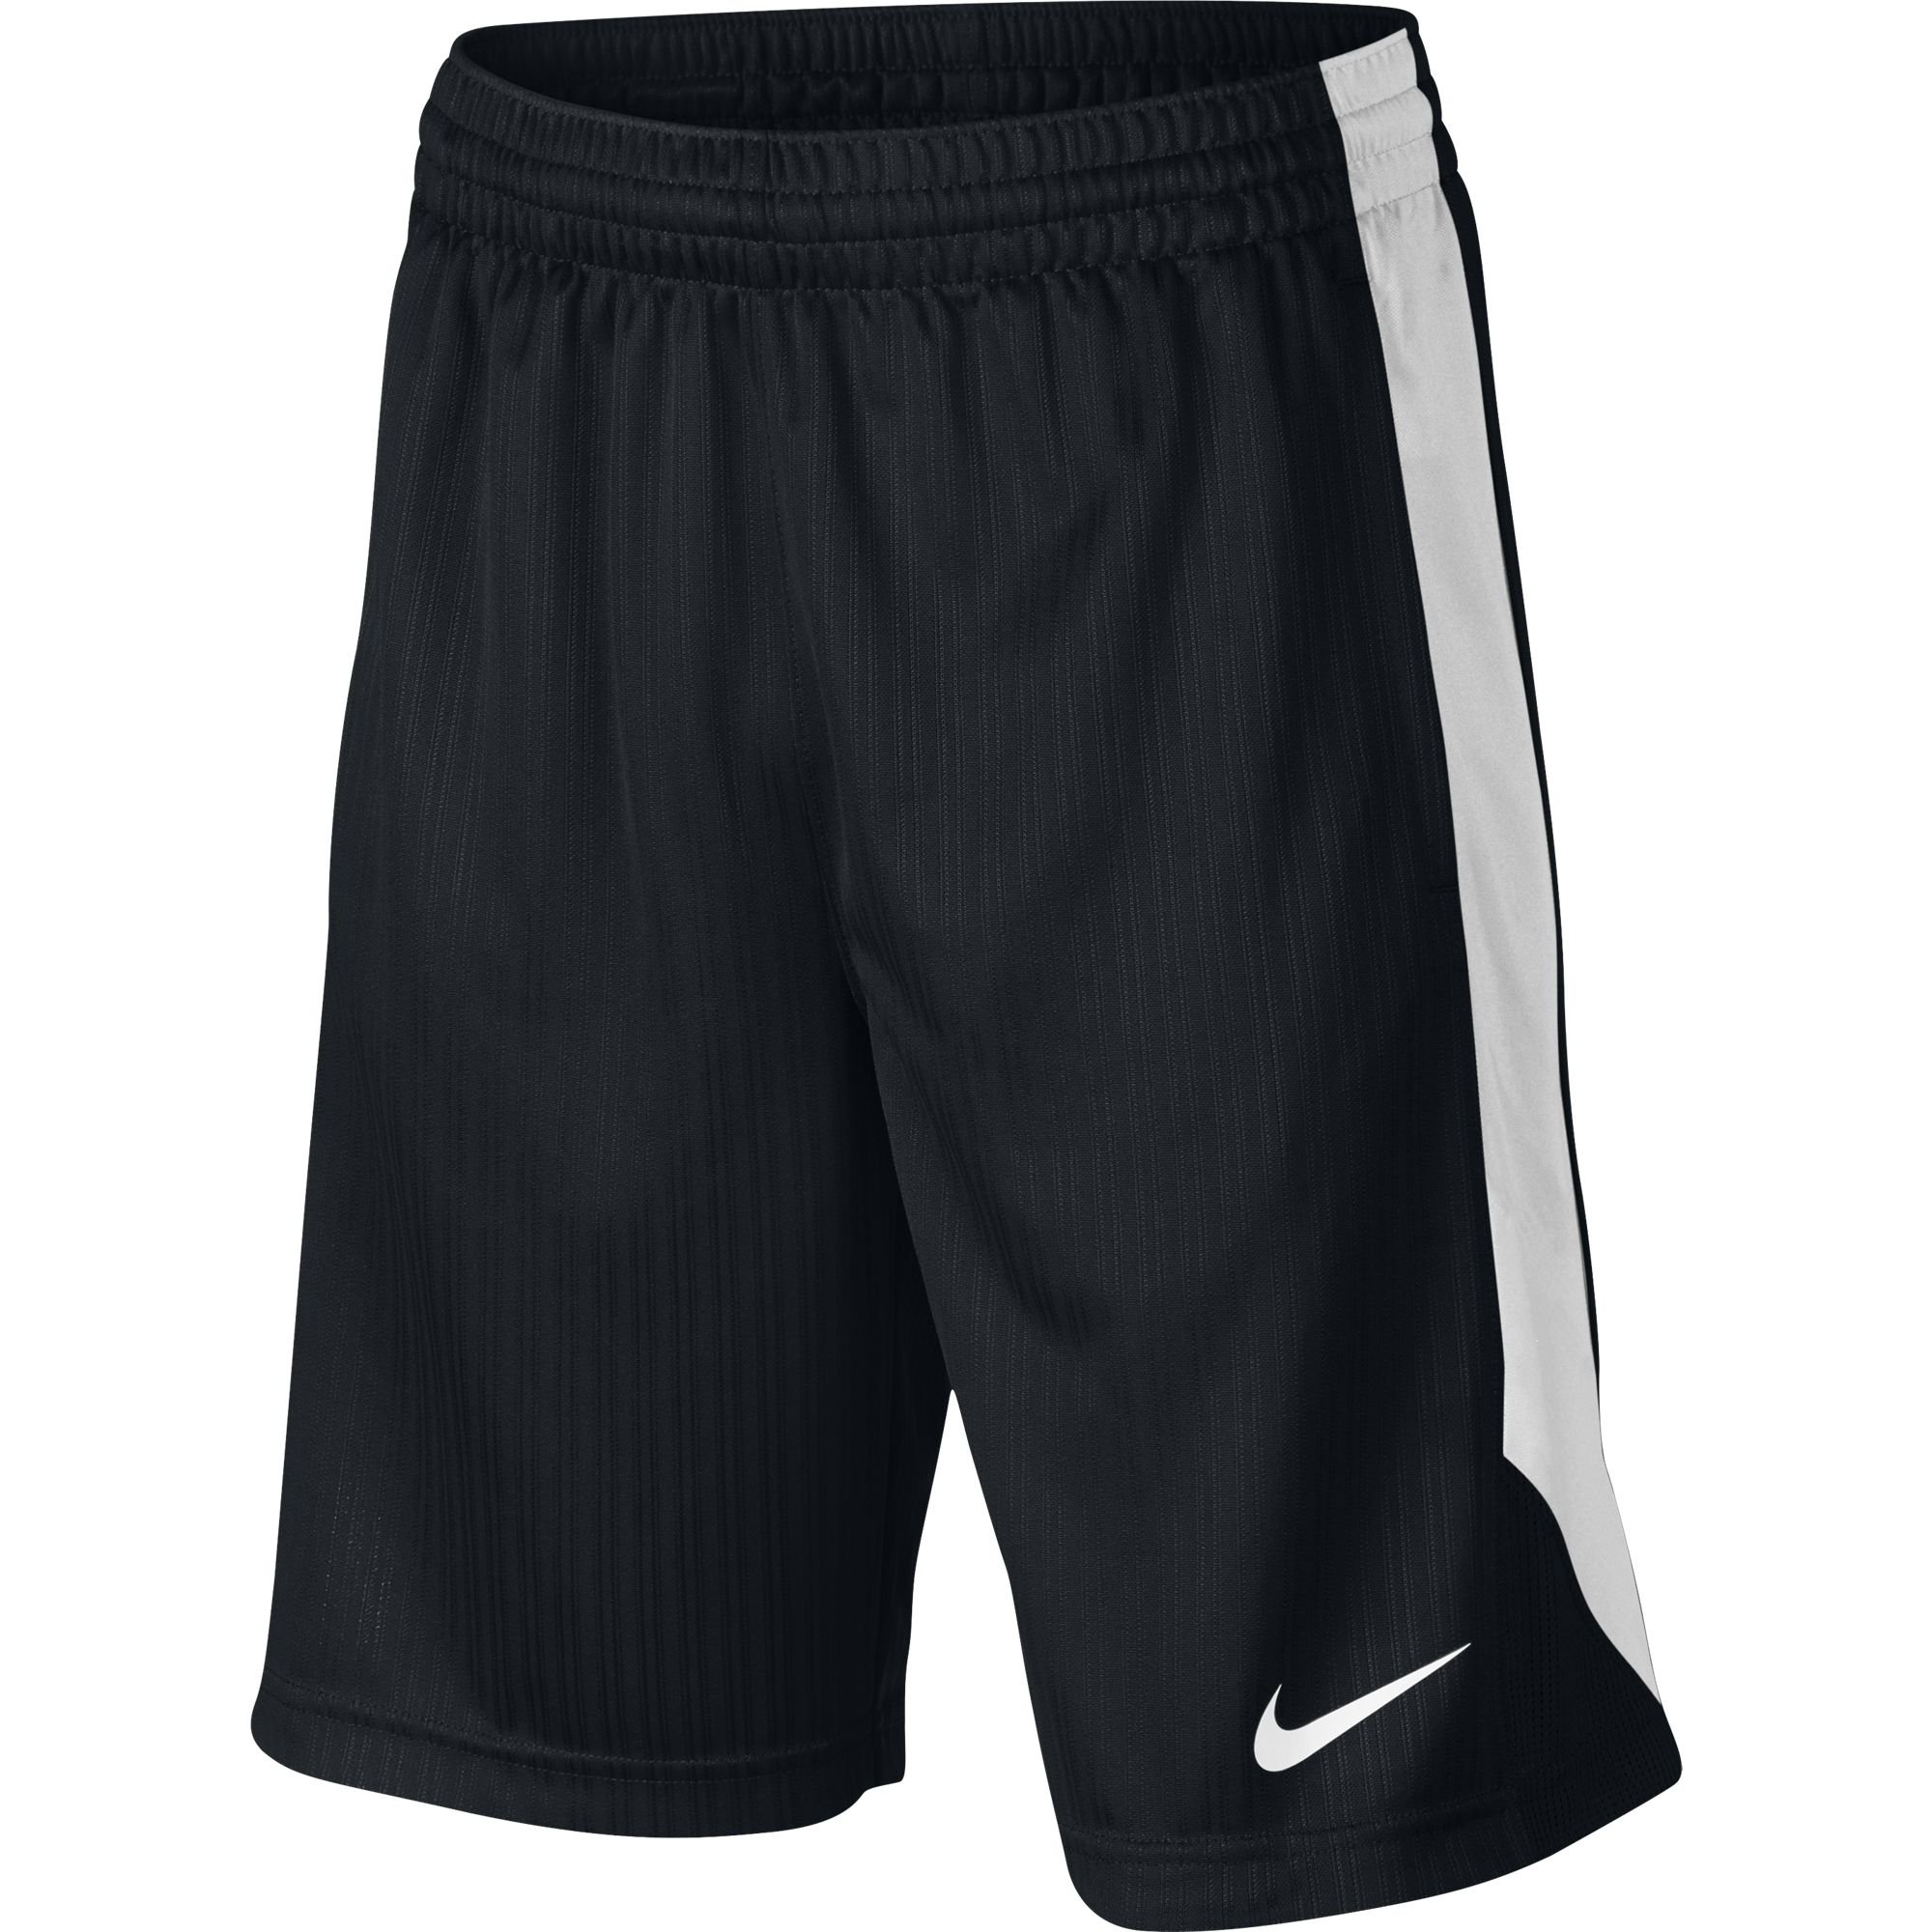 NIKE Boys' Layup Shorts, Black/White/Black/White, Small